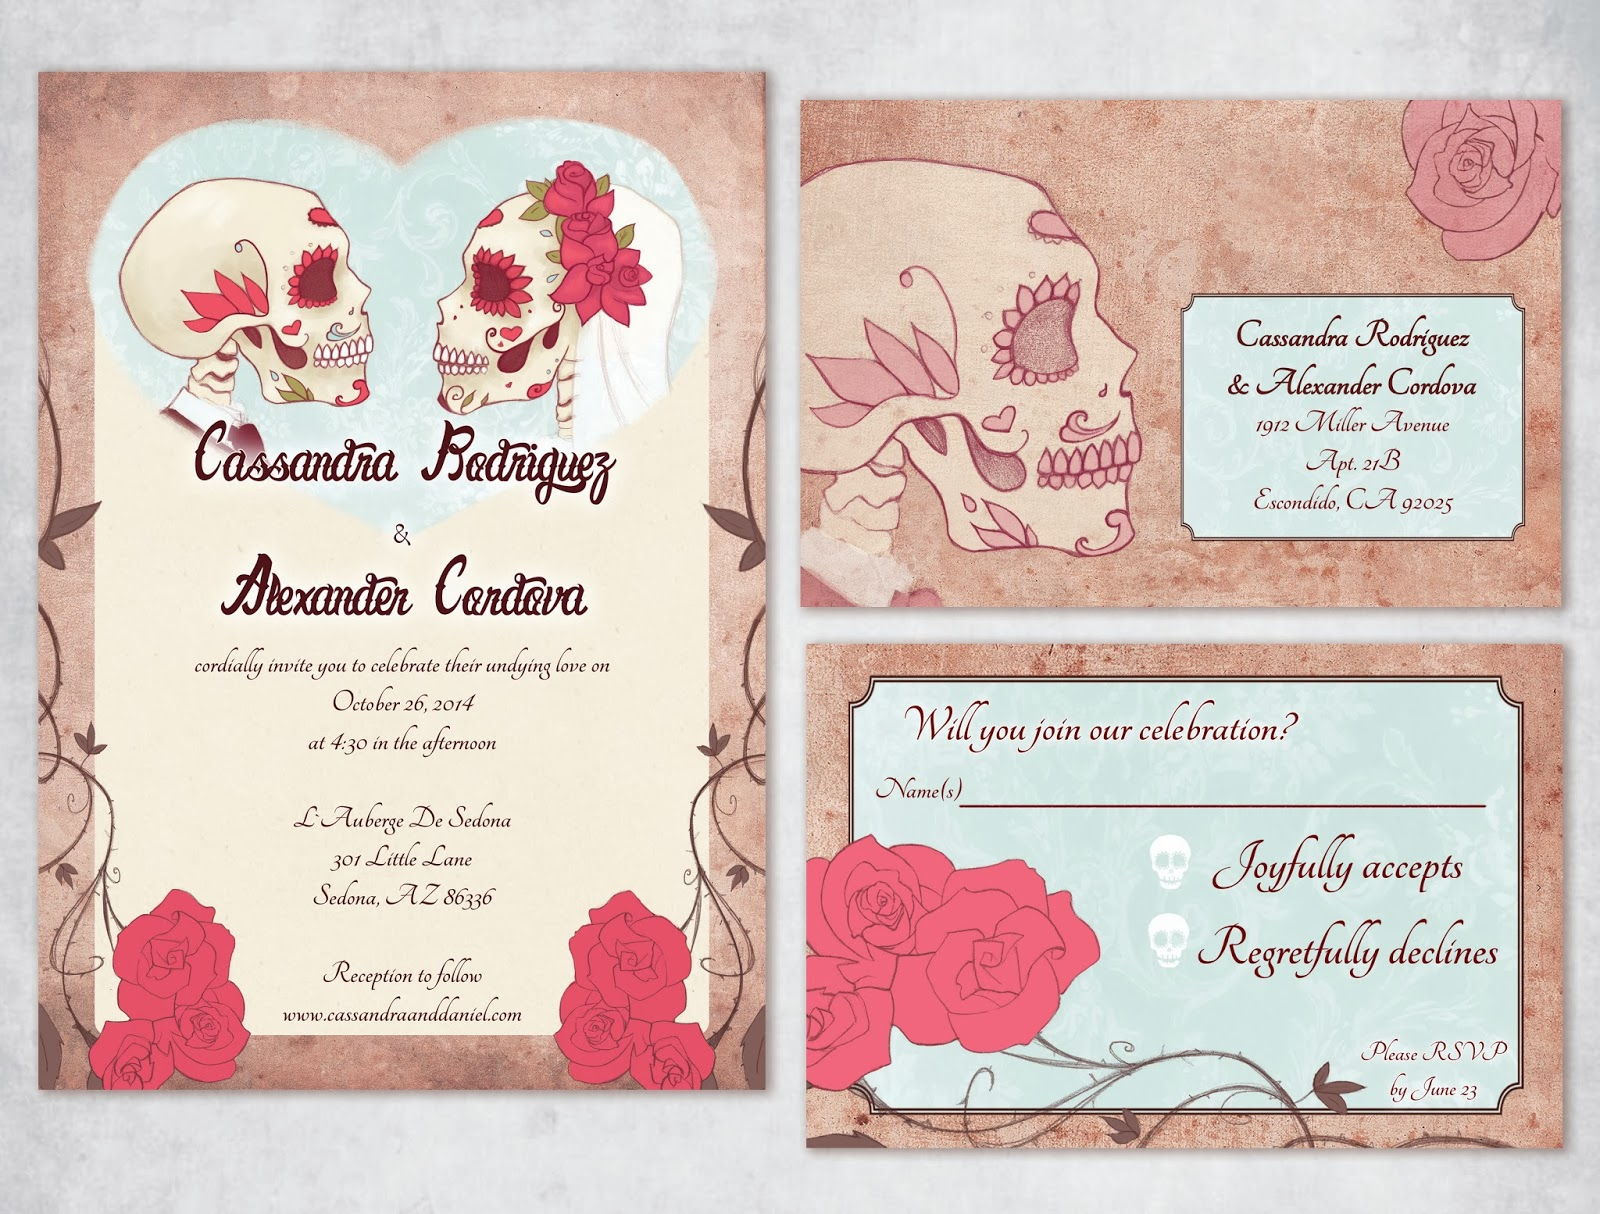 Muertos Formal Wedding Invitation Set